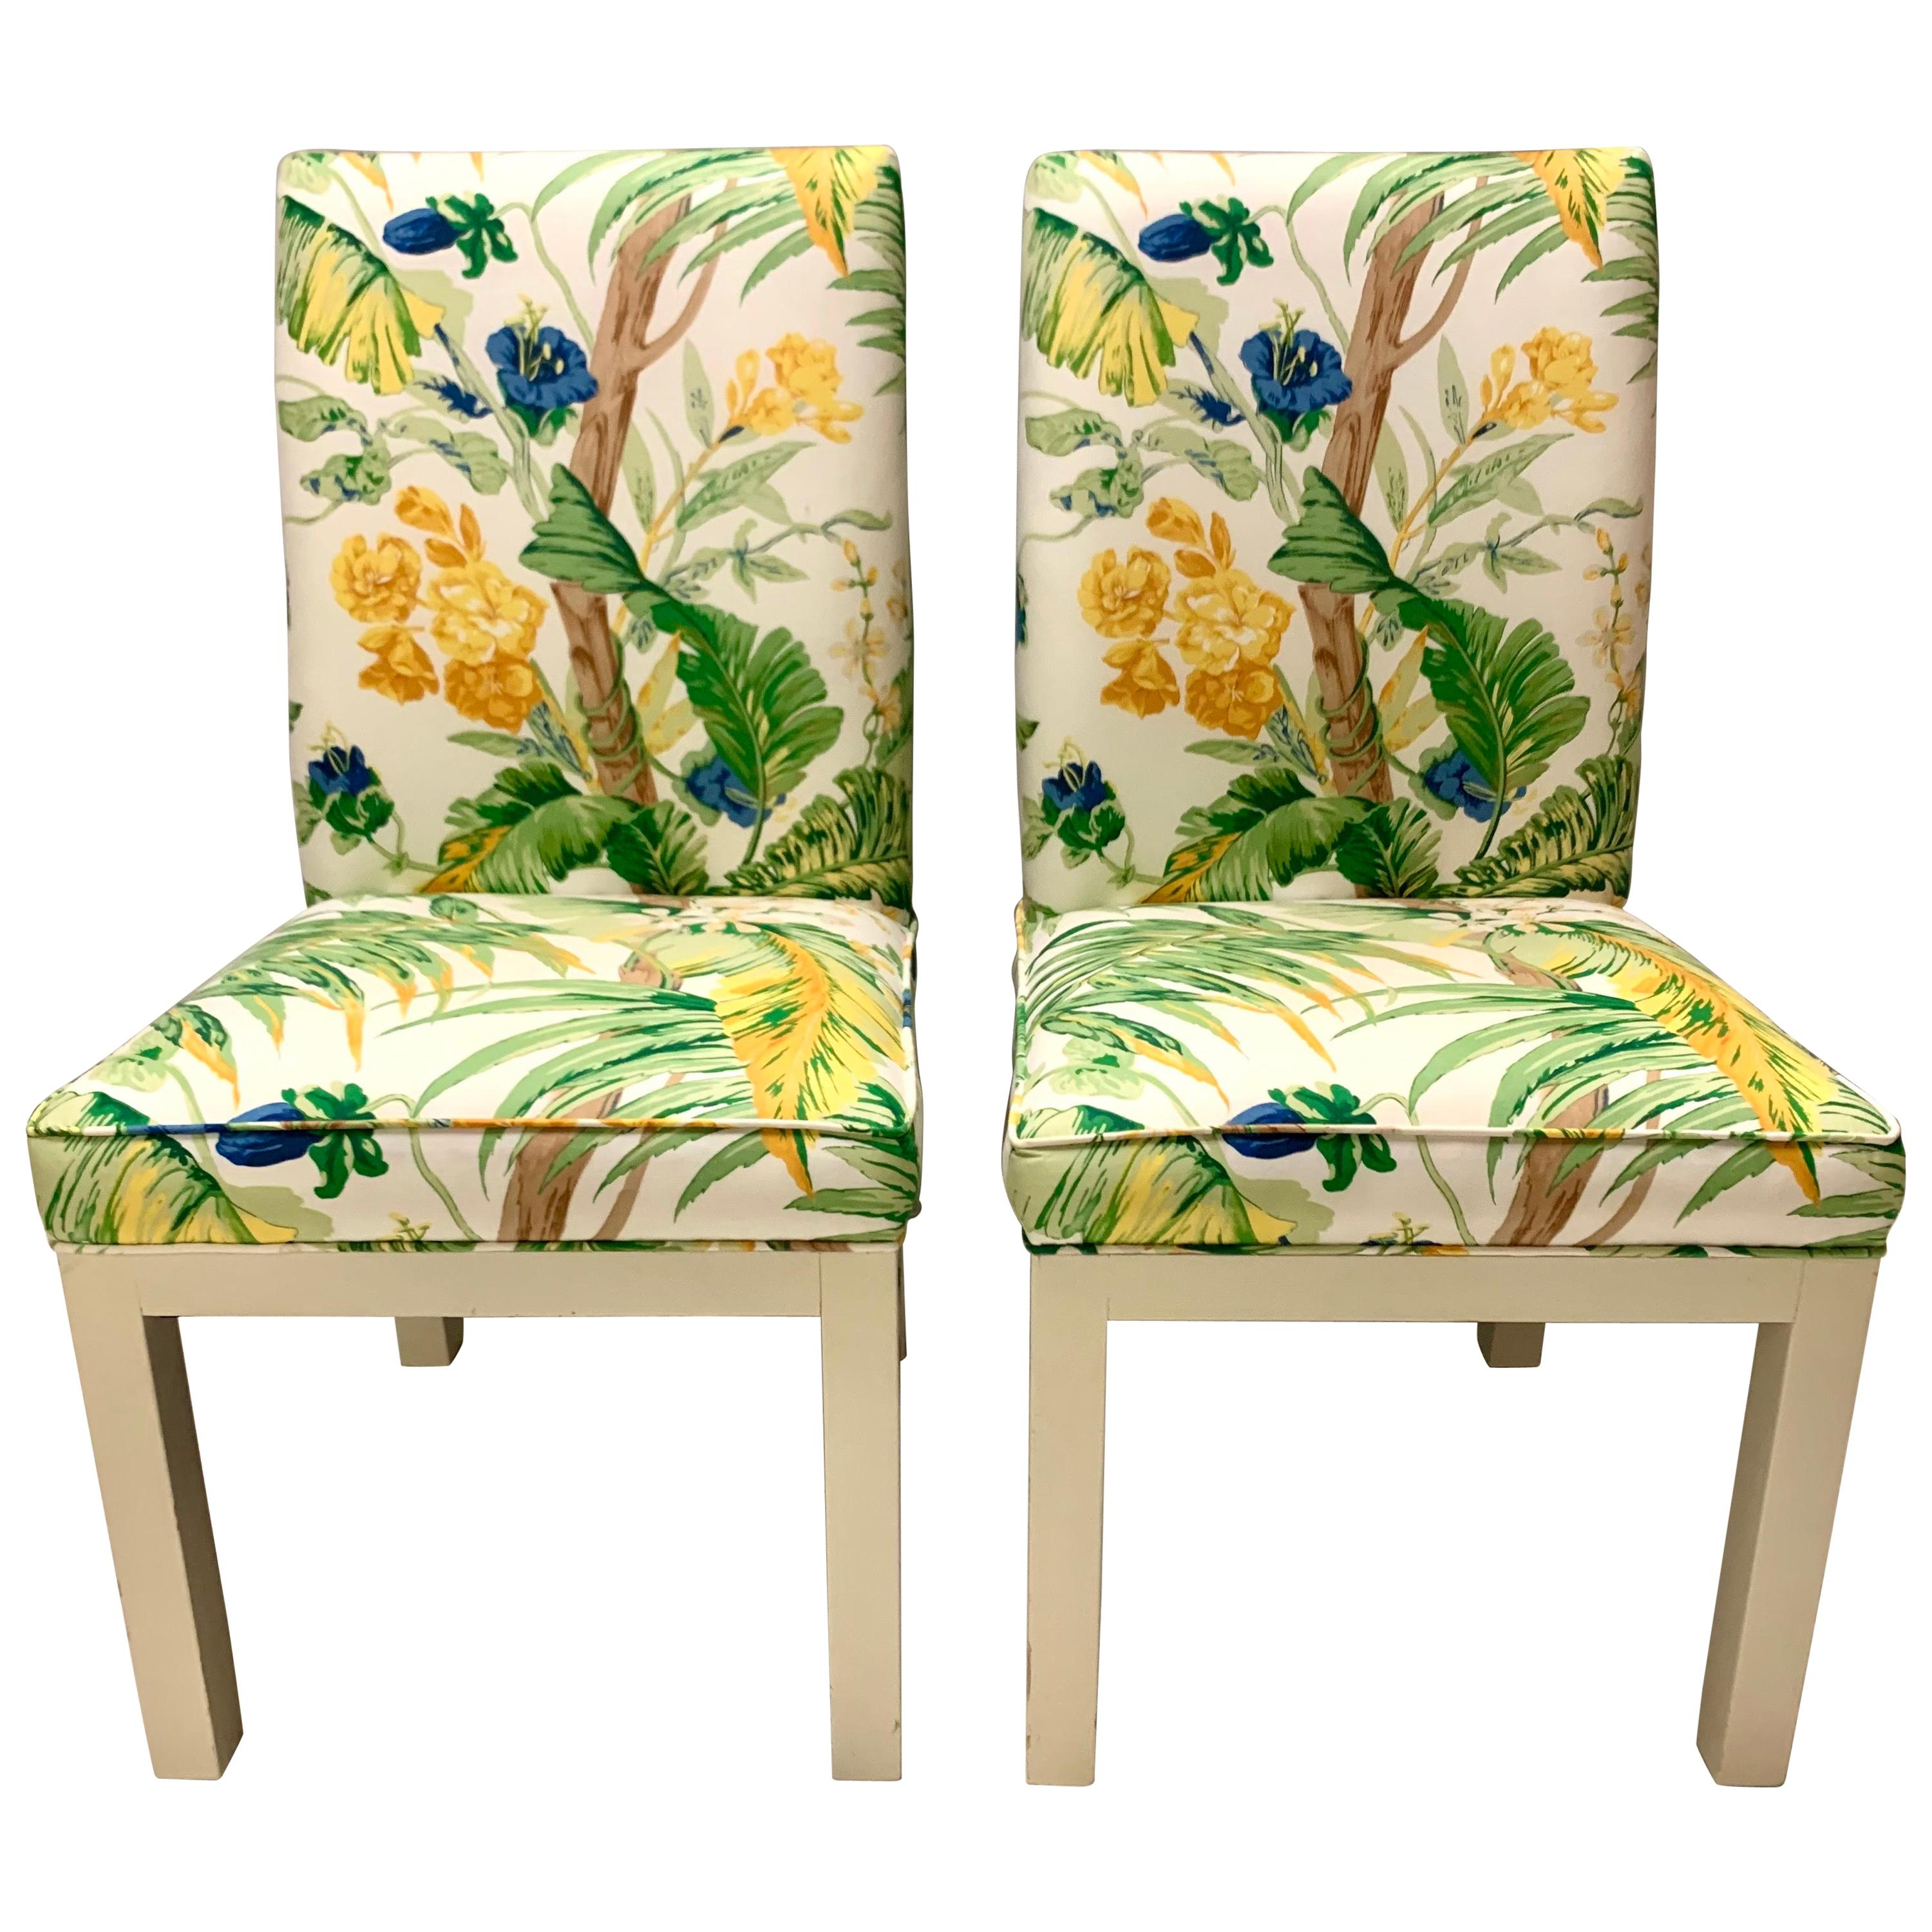 Set of 4 Vintage Newly Upholstered Slipper Chairs Lee Jofa Lilly Pulitzer Fabric